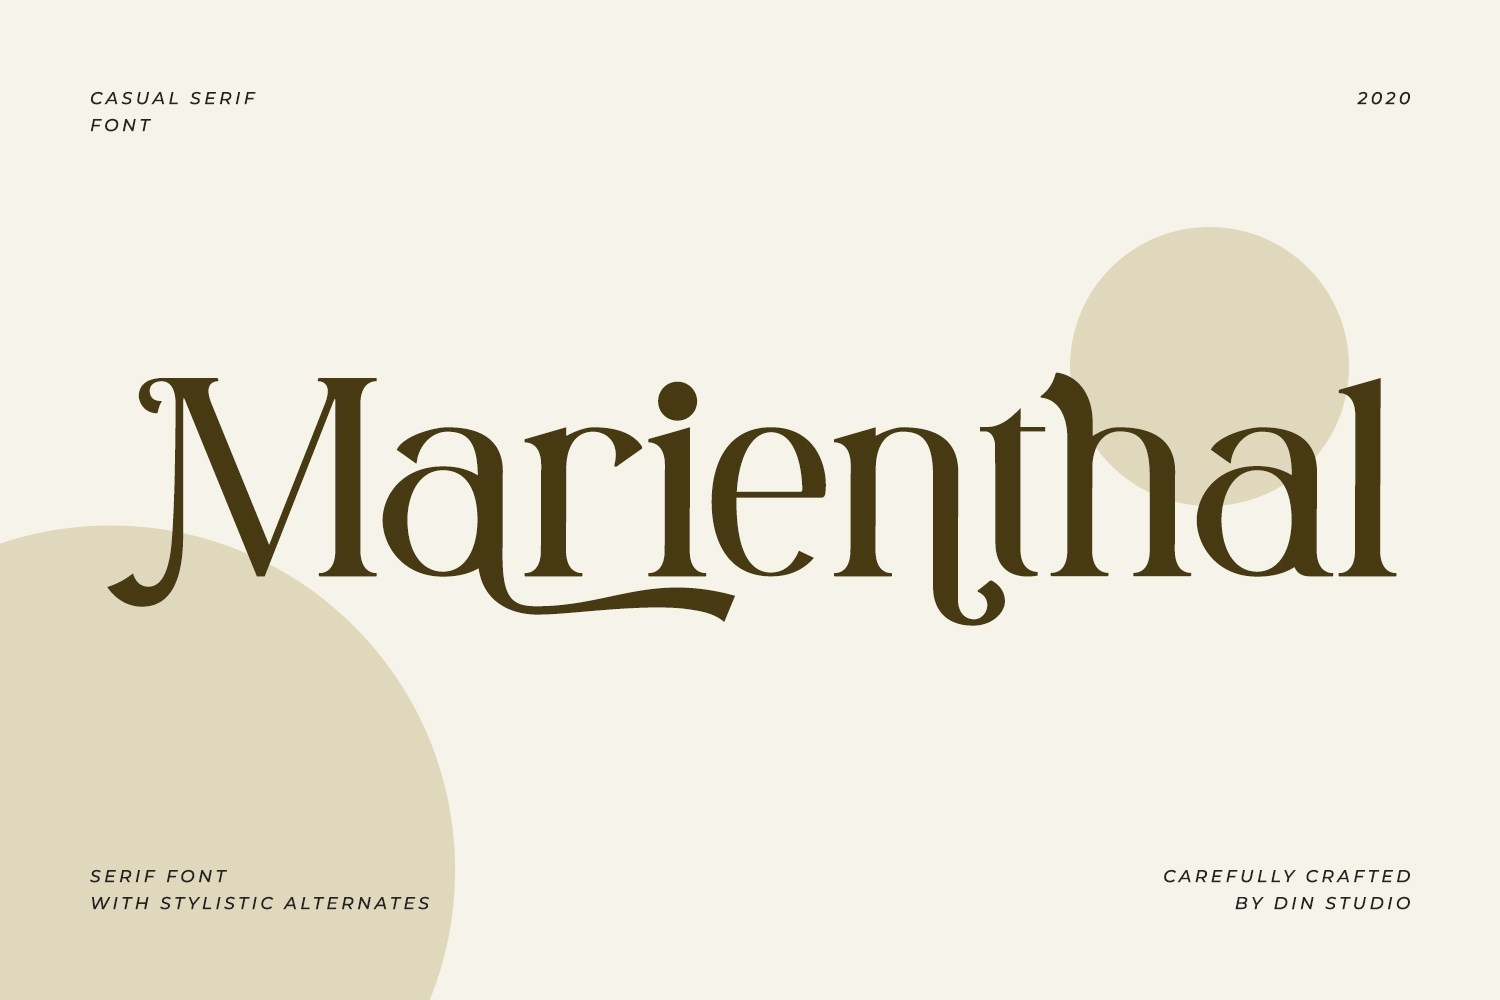 Marienthal-Casual-Serif-Font